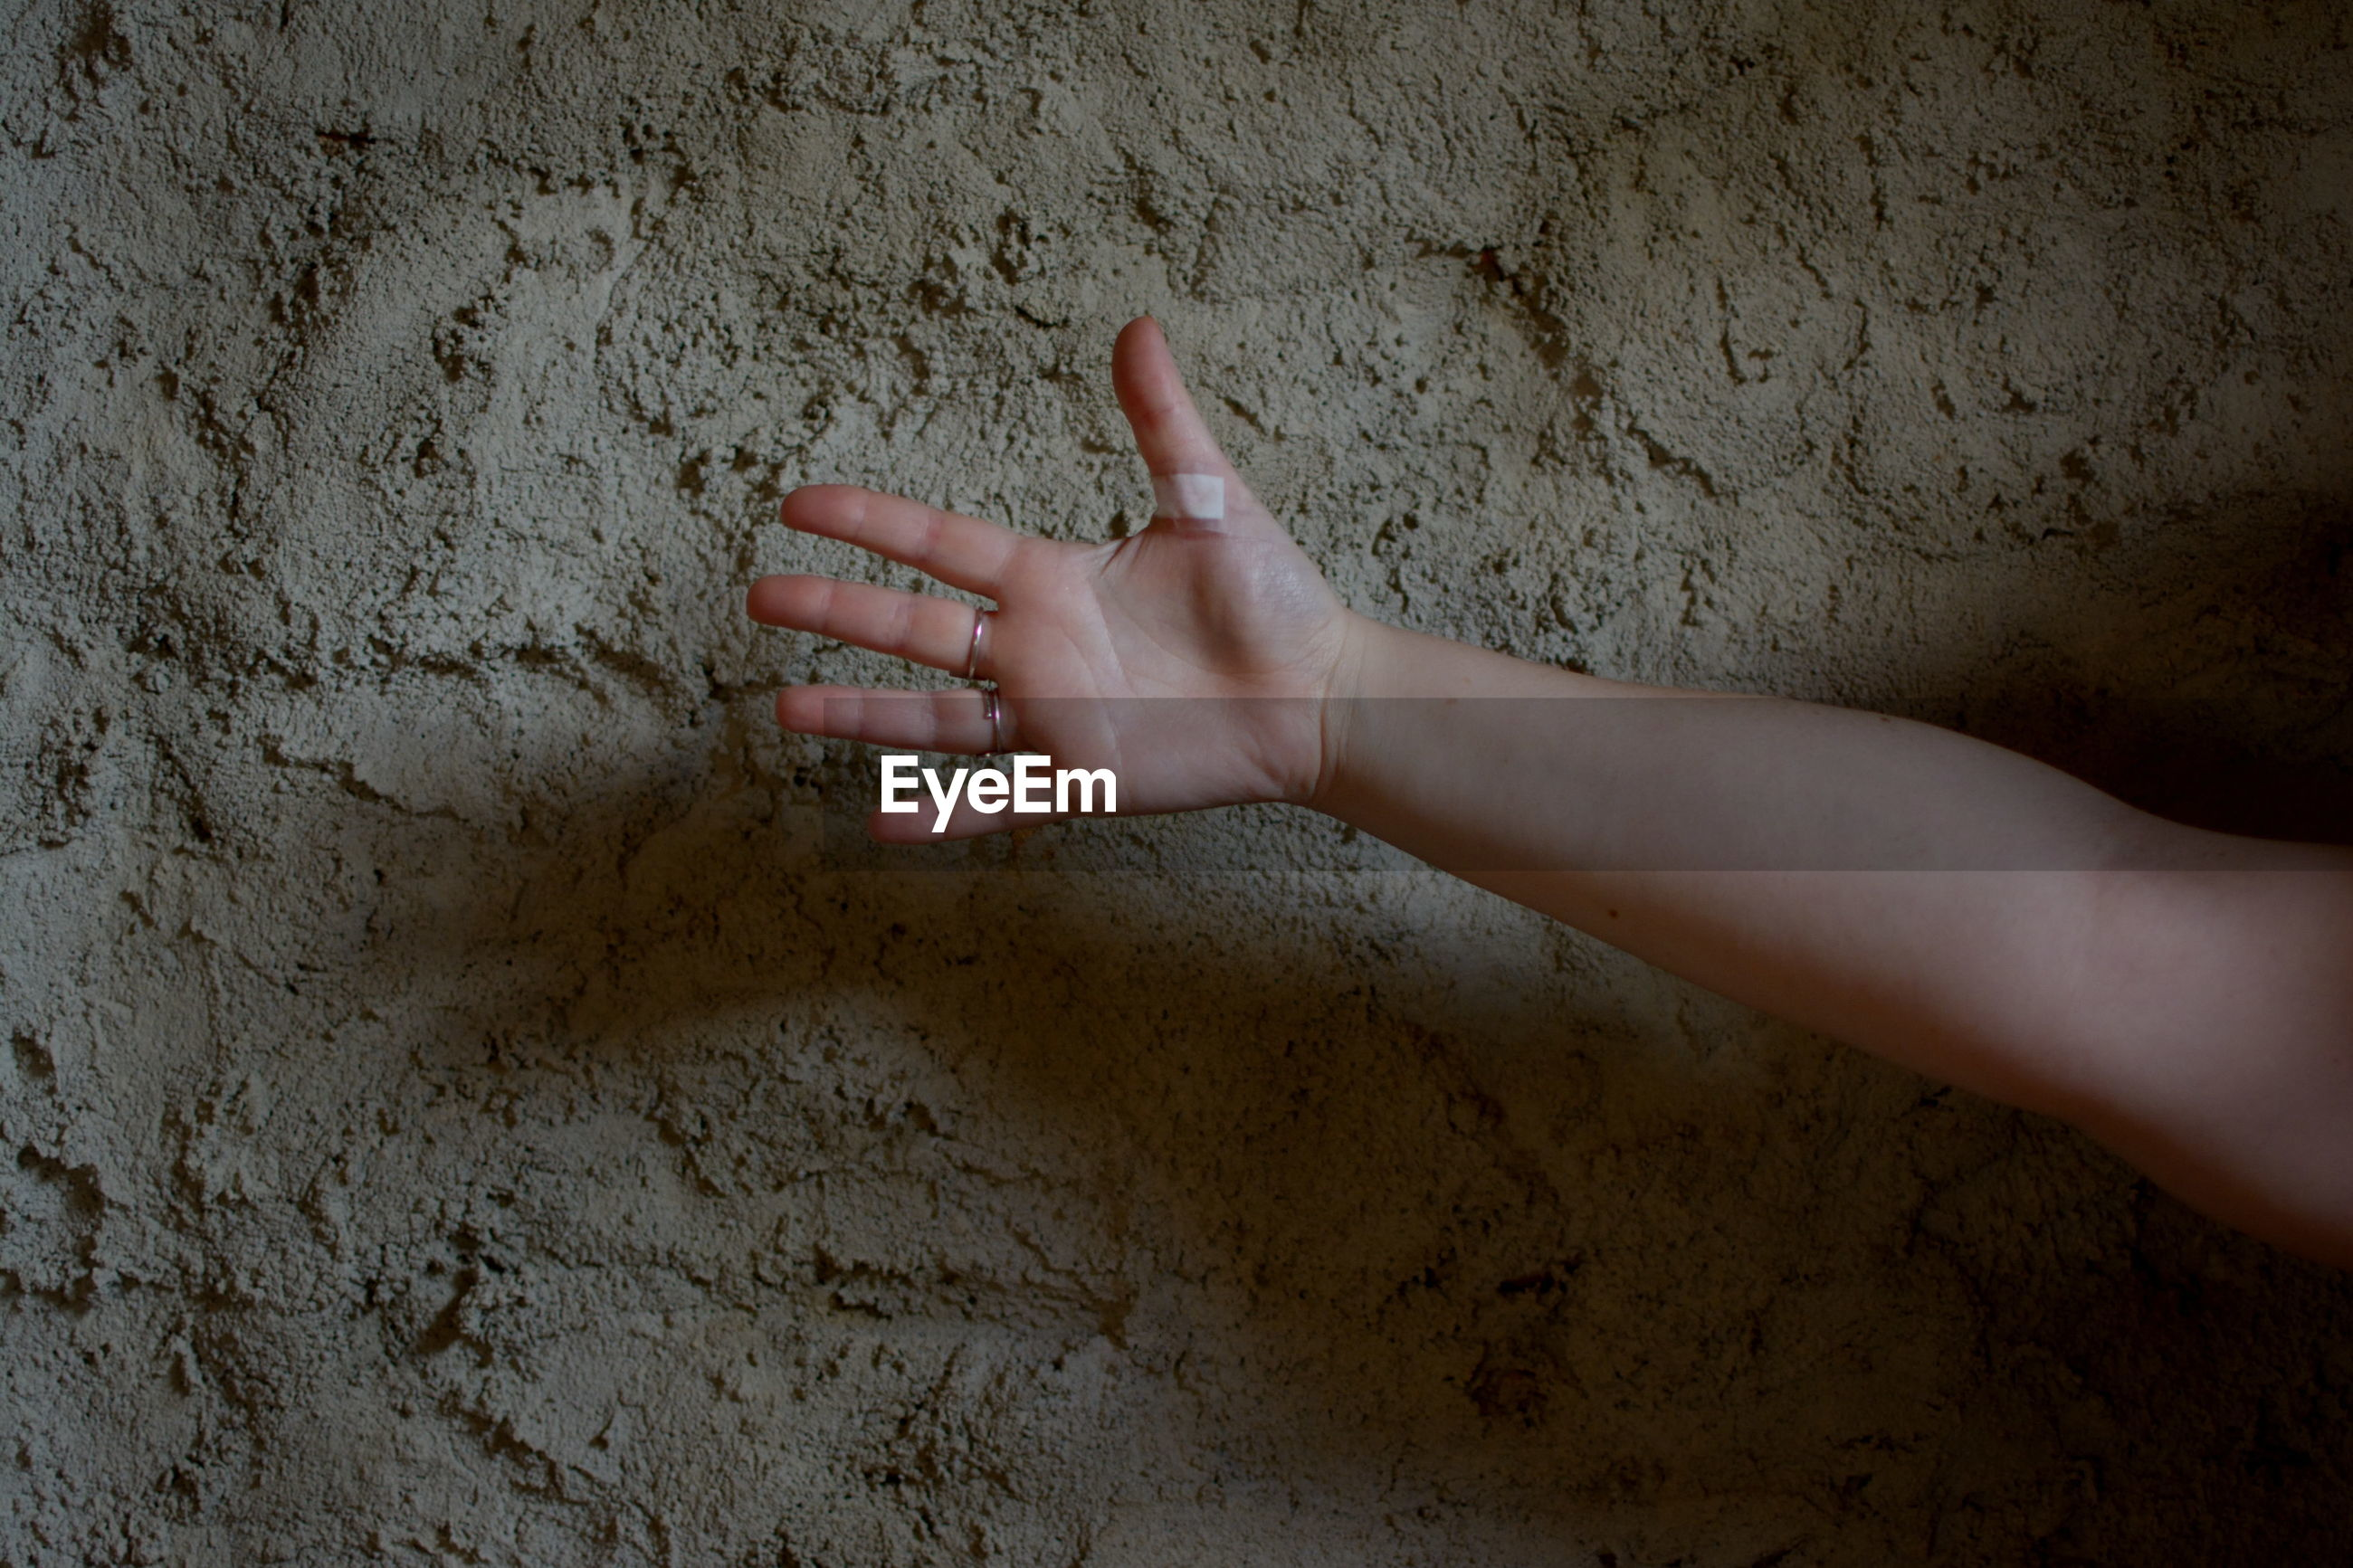 human hand, hand, human body part, one person, real people, wall - building feature, body part, finger, human finger, gesturing, lifestyles, wall, touching, indoors, day, unrecognizable person, leisure activity, showing, child, human limb